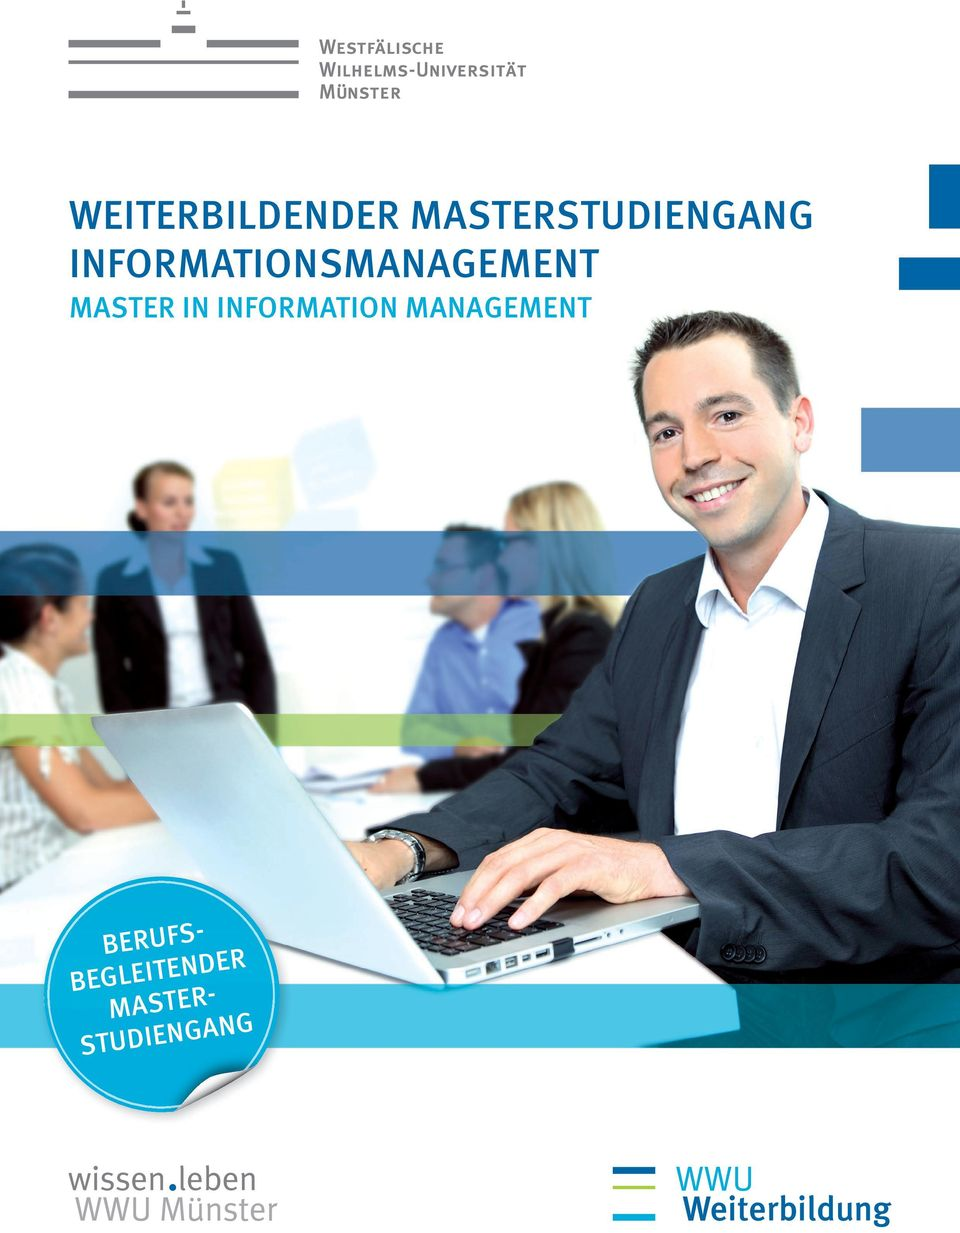 informationsmanagement master